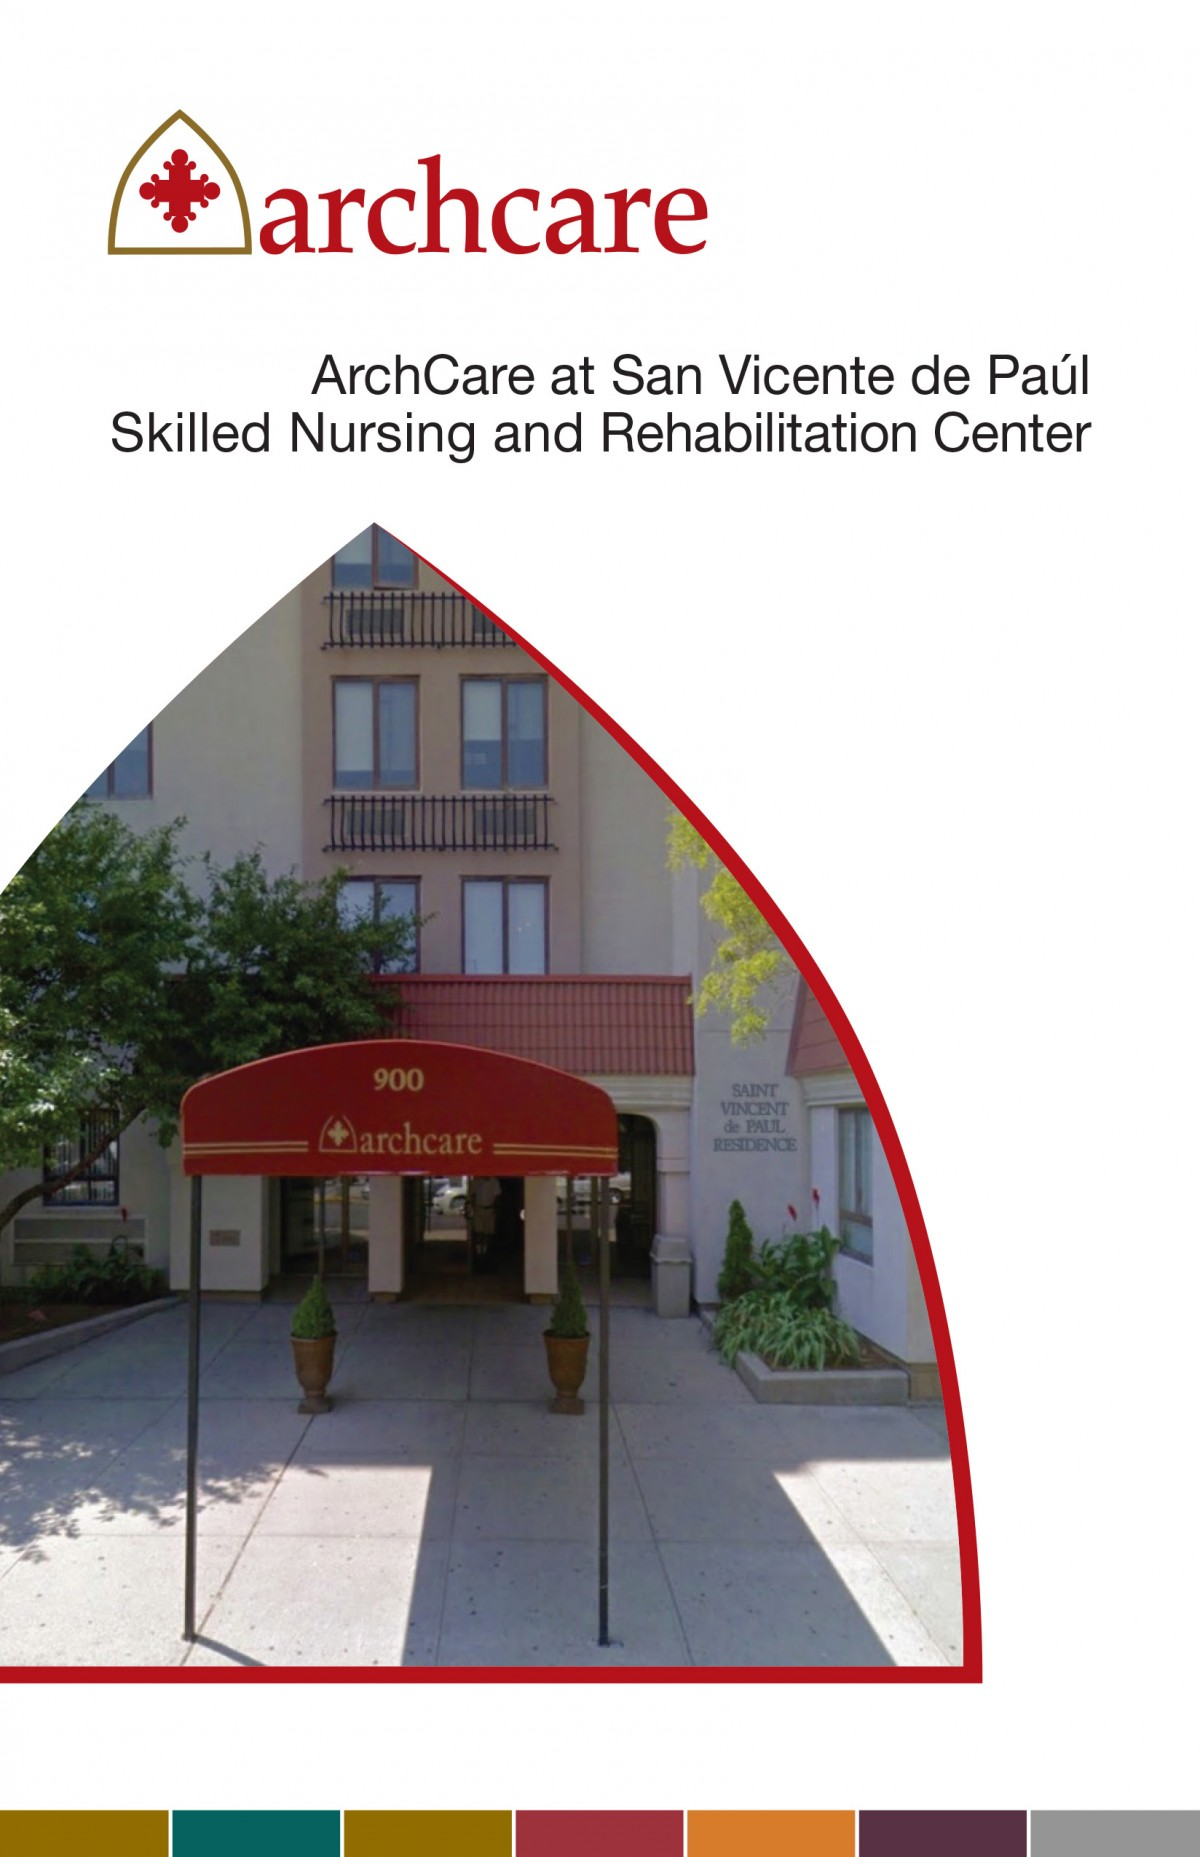 ArchCare at San Vicente de Paúl Skilled Nursing and Rehabilitation Center brochure